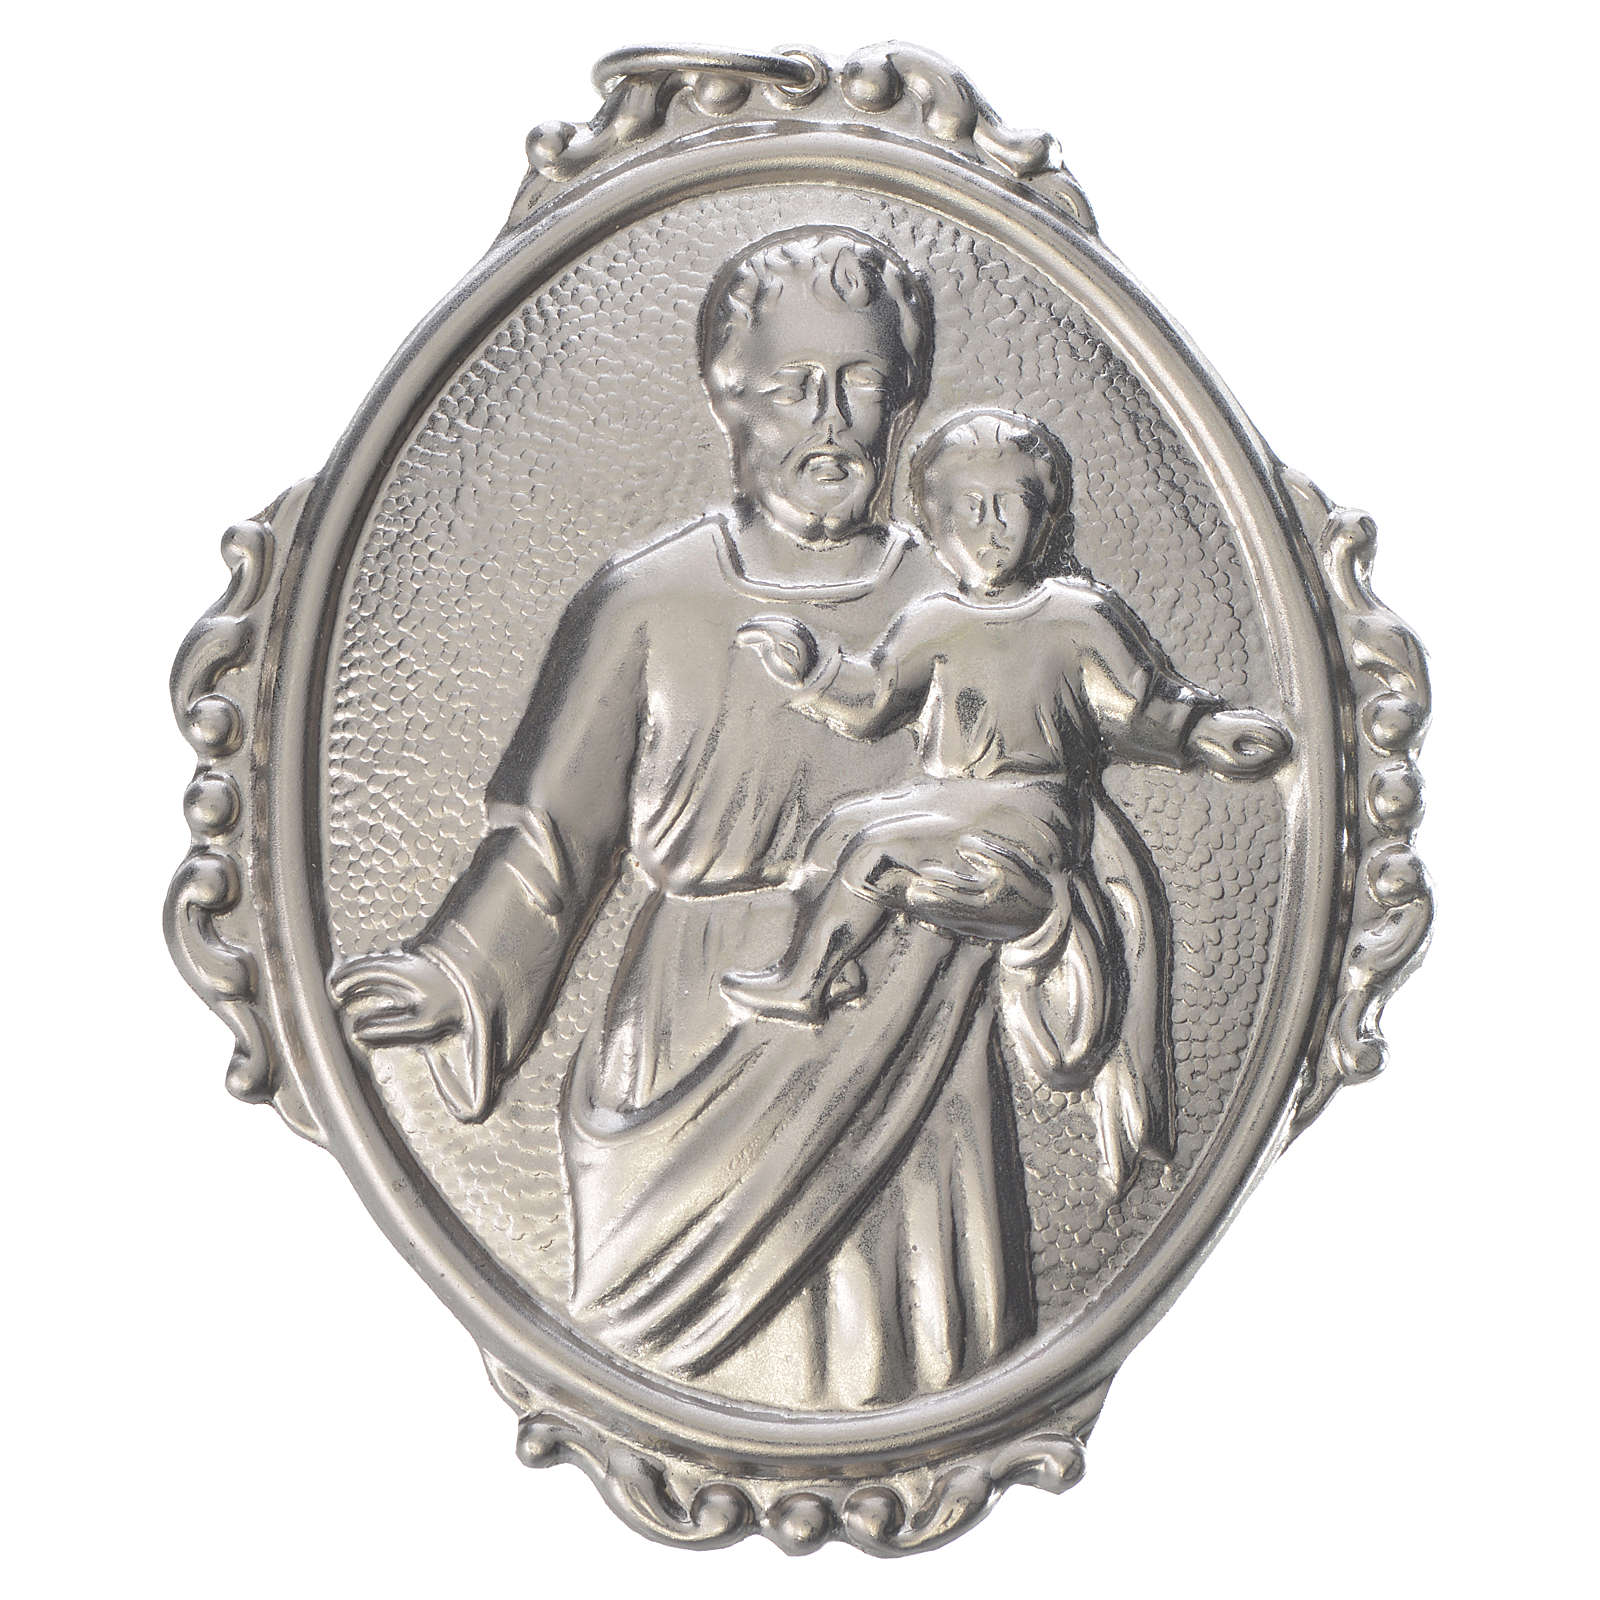 Confraternity Medal in brass, Saint Joseph with baby Jesus 3